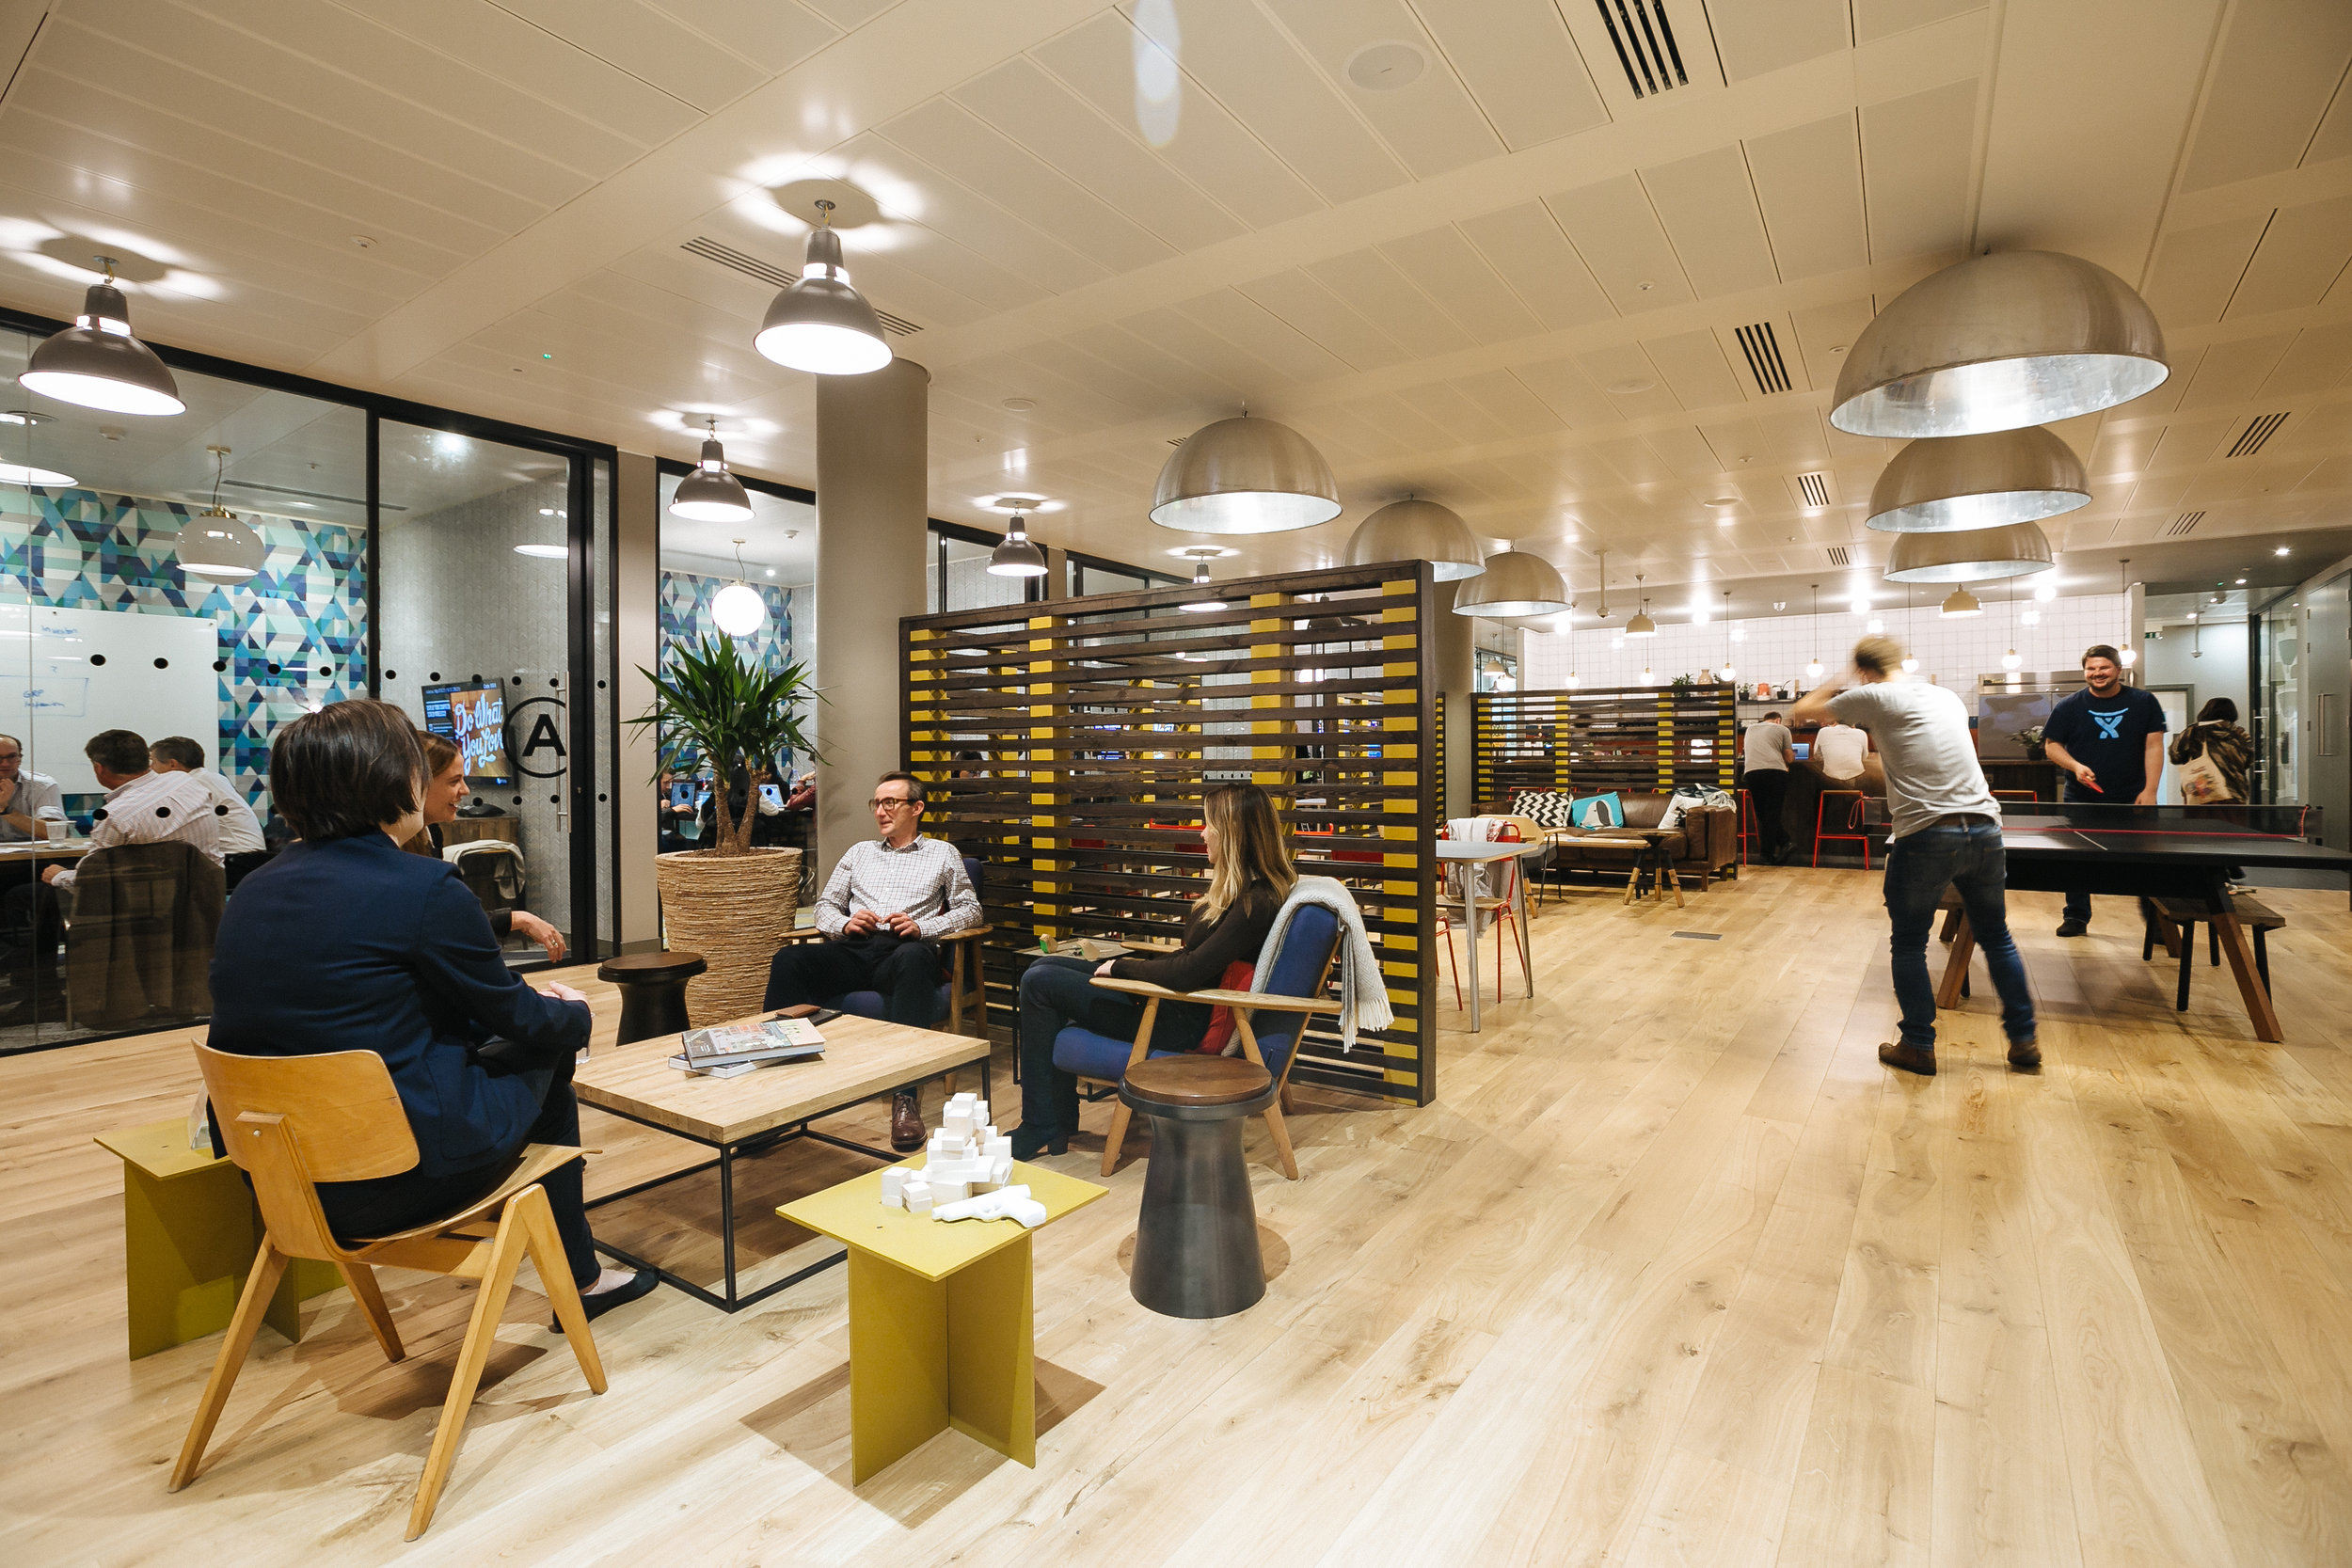 A WeWork office, with open meeting space and… ping pong.